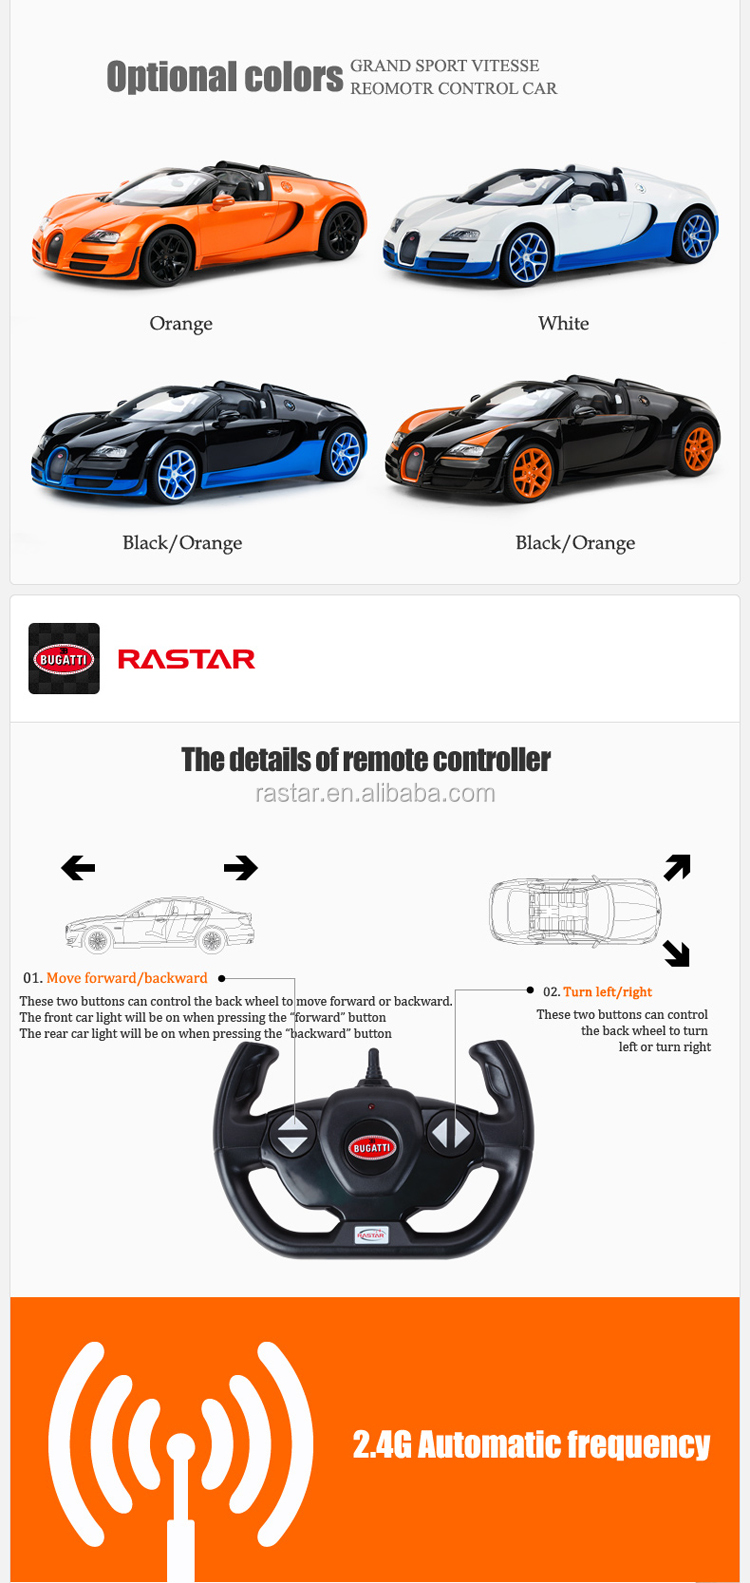 Rastar Ferrari Long Distance Remote Control universal toy car model